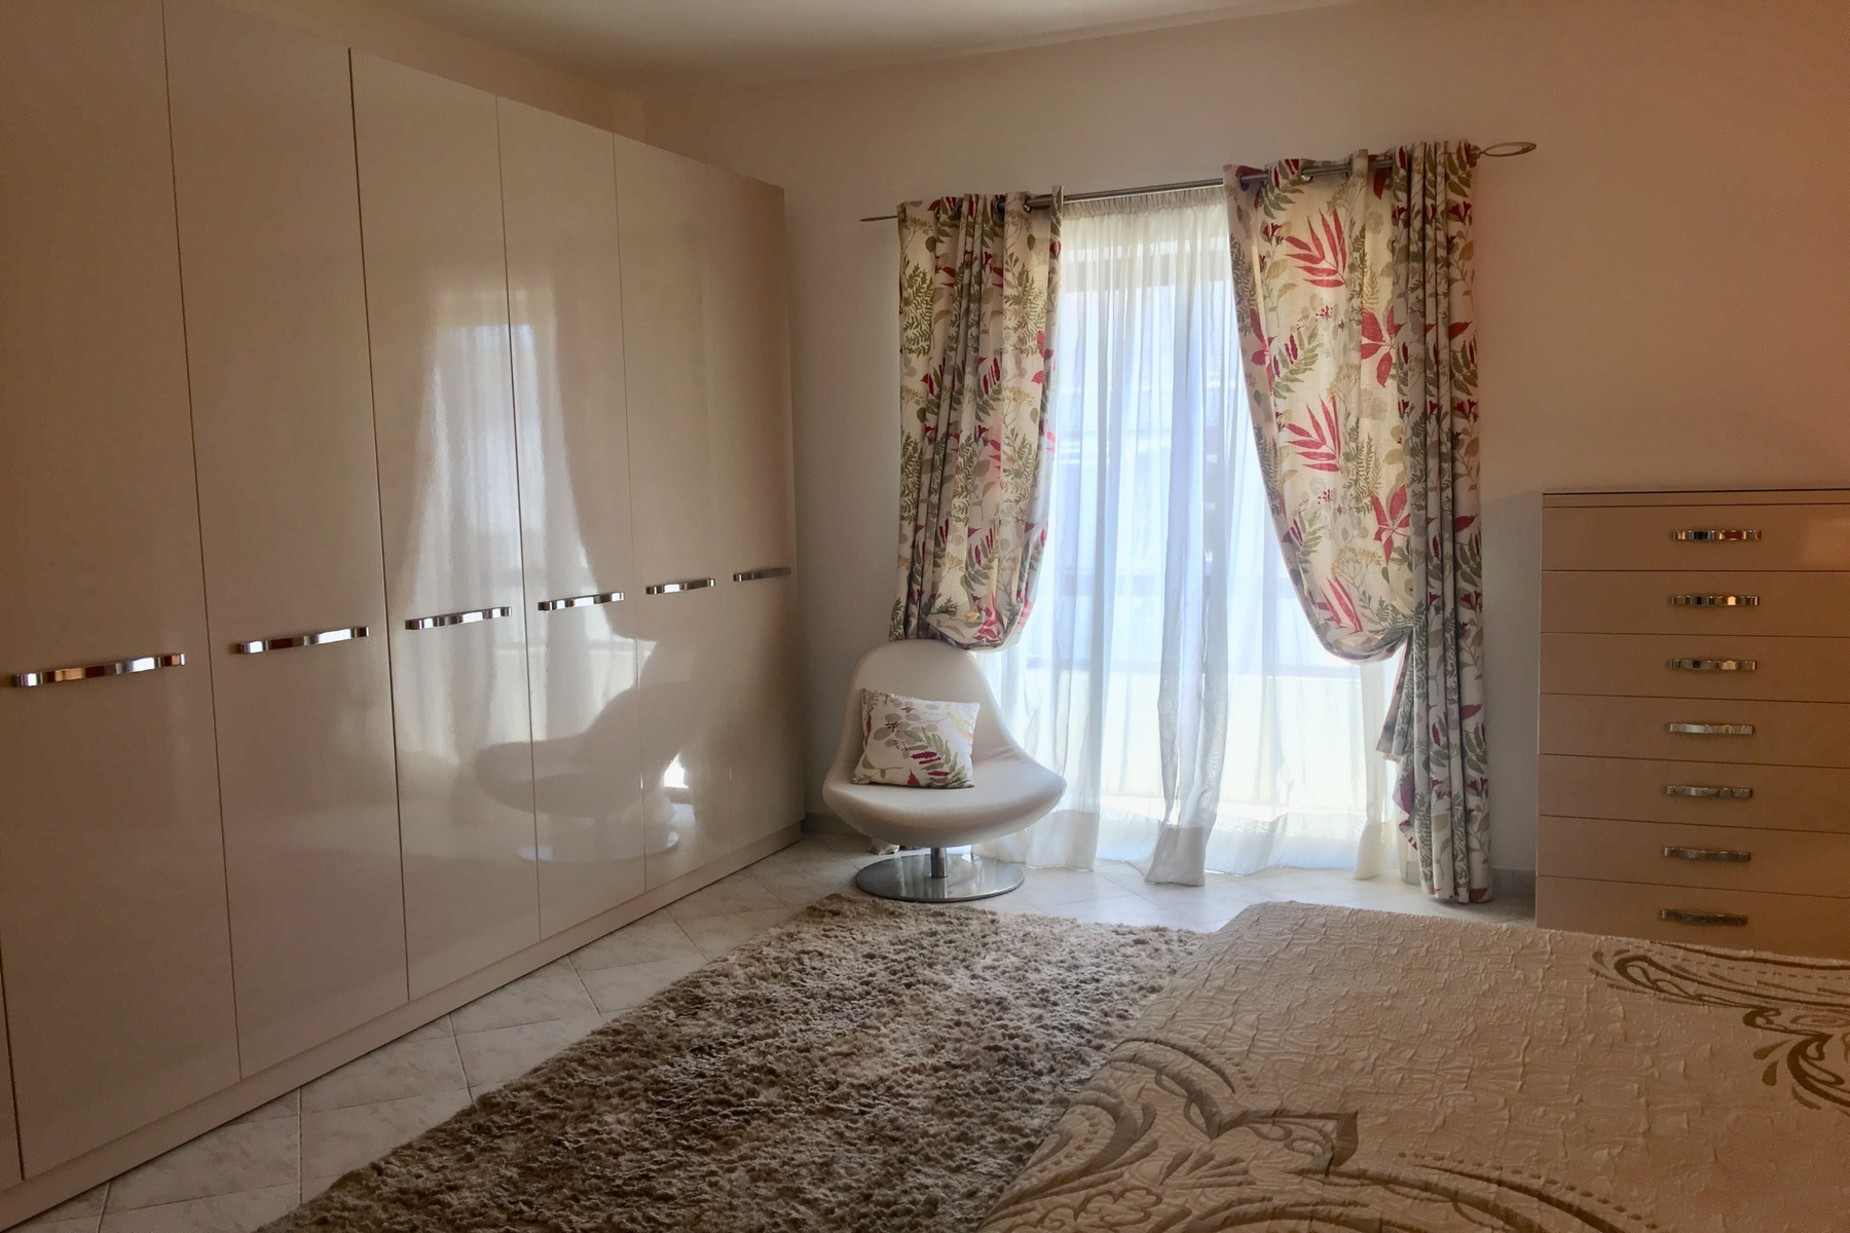 4 bed Apartment For Rent in Sliema, Sliema - thumb 7